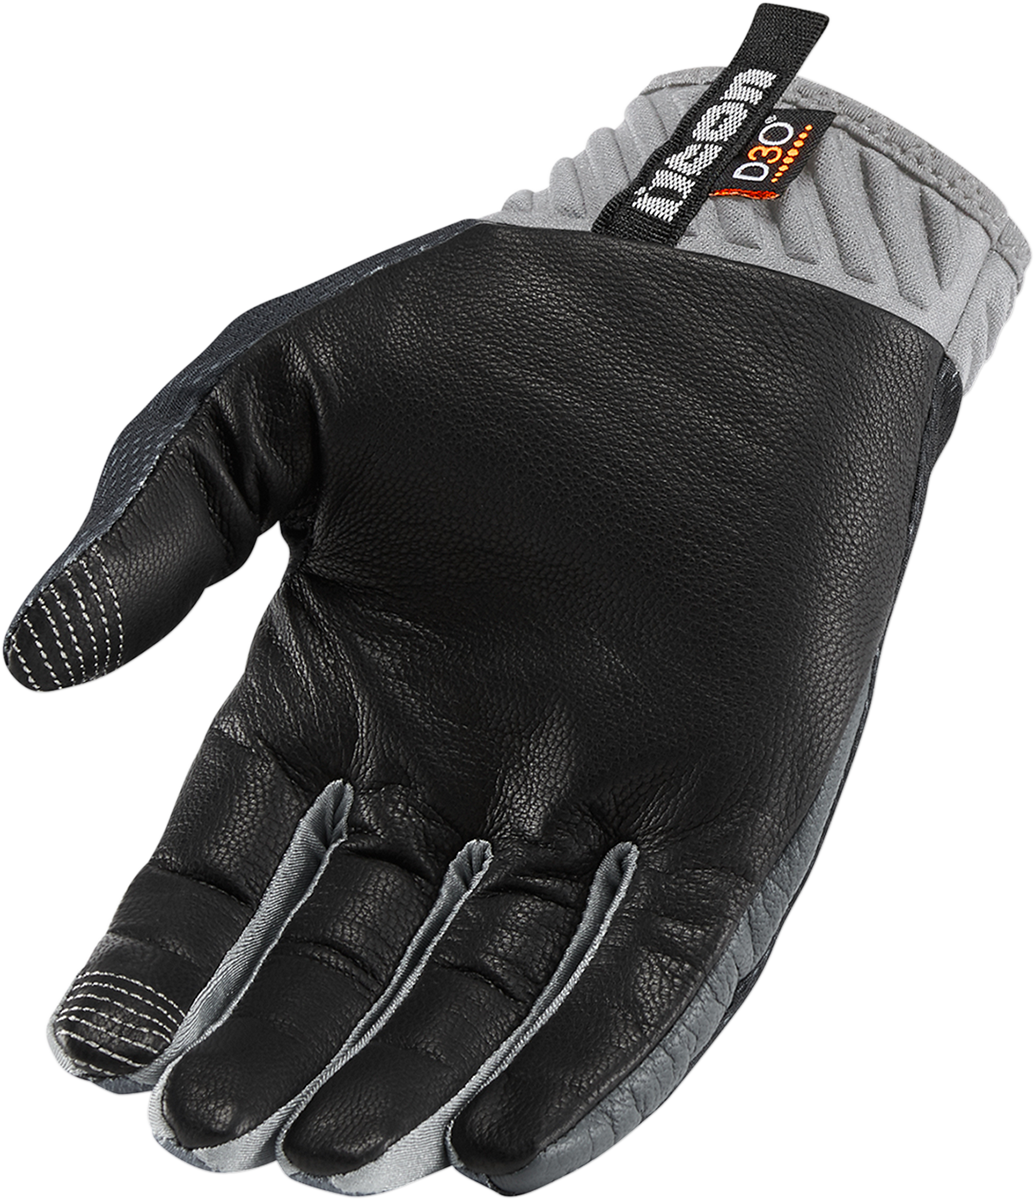 GLOVE ANTHM DEPLOY GRY